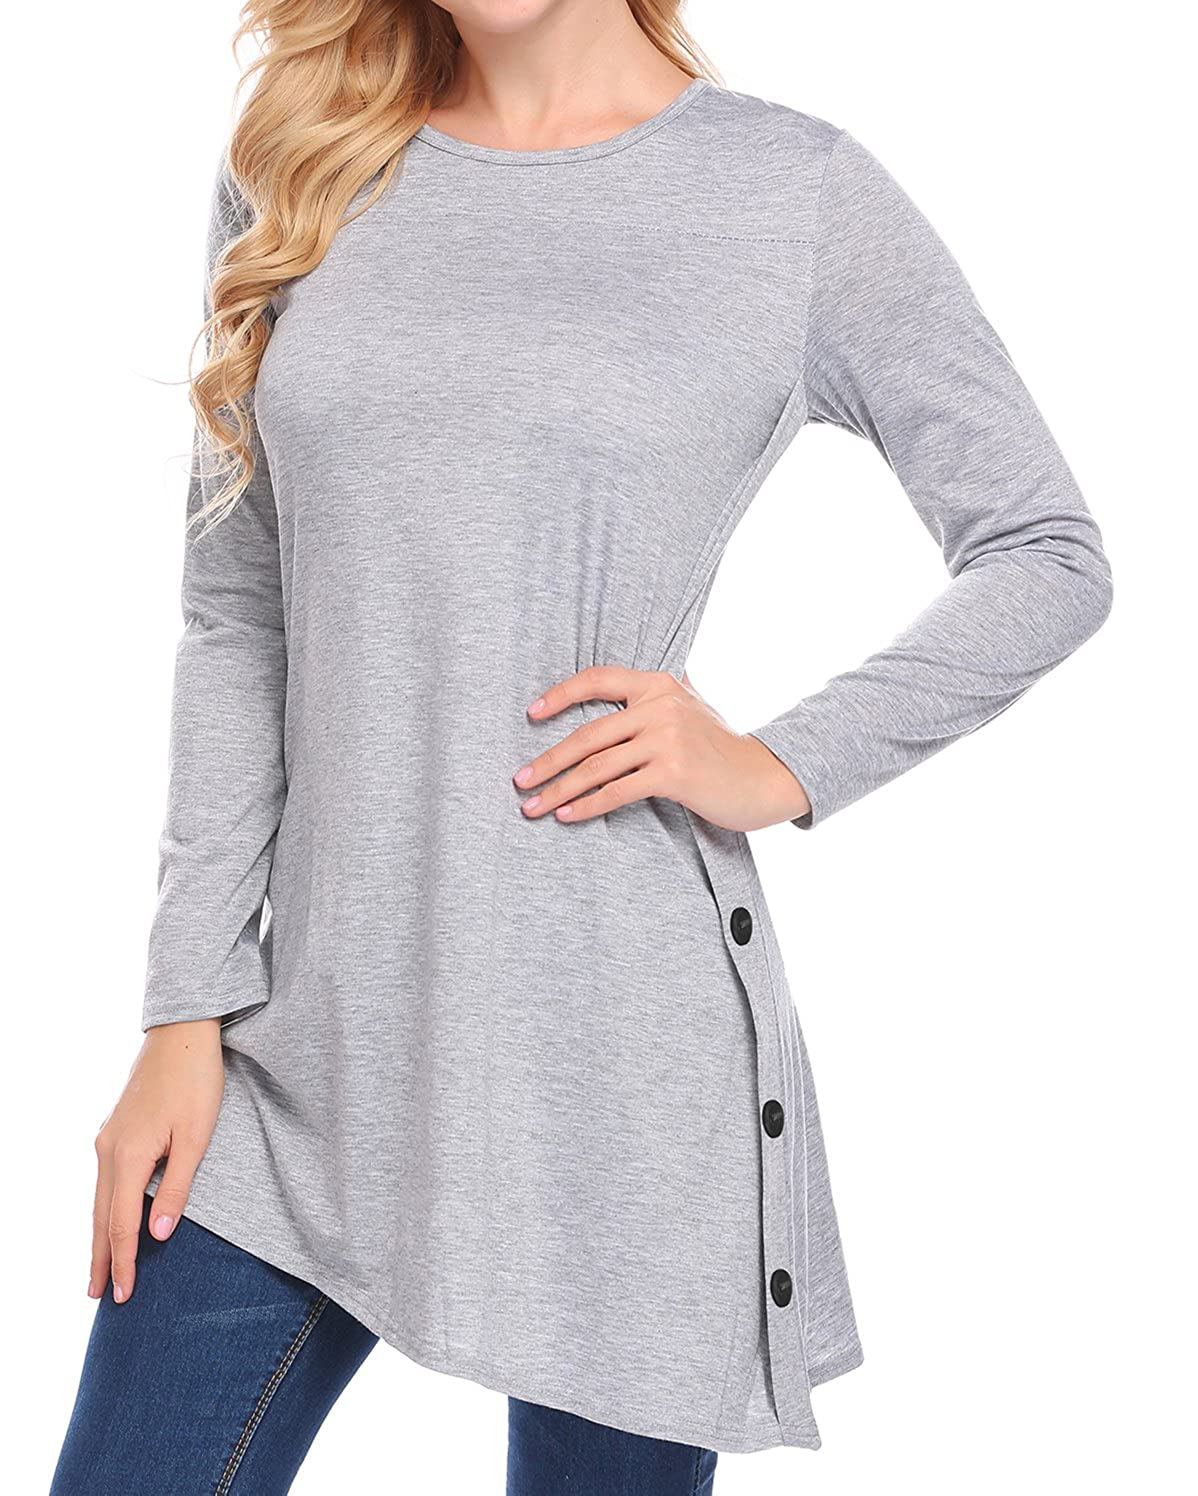 EASTHER Women's Casual Scoop Neck Button Long Sleeve Loose Long T-Shirt Tunic Top THV005986